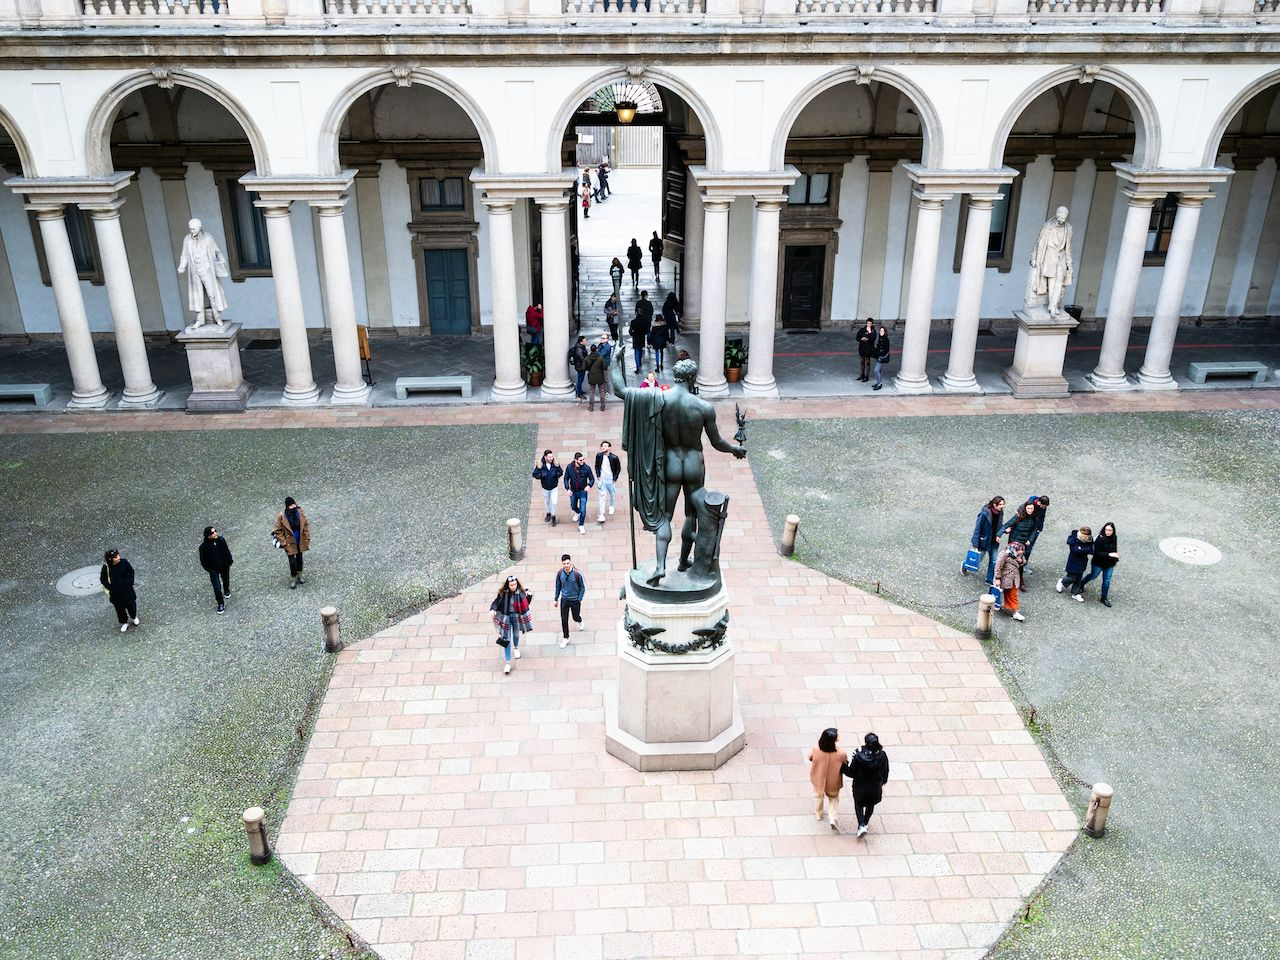 Courtyard of Onore courtyard of Palazzo Brera, House of Pinacoteca di Brera in Milan